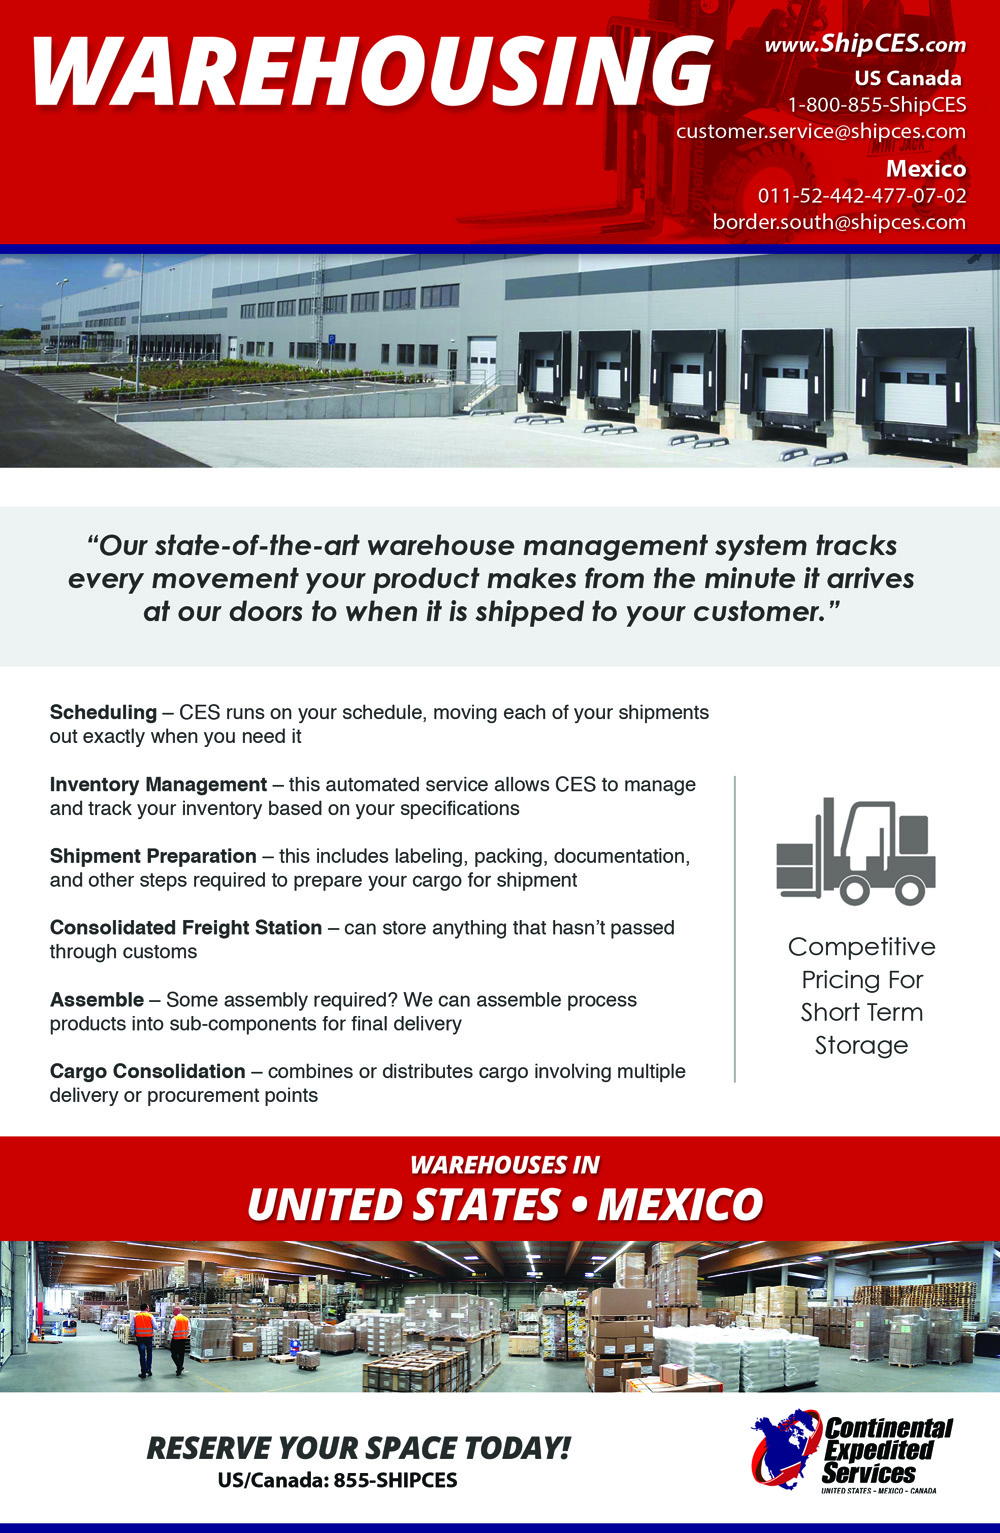 Surface Expedite – Continental Expedited Services